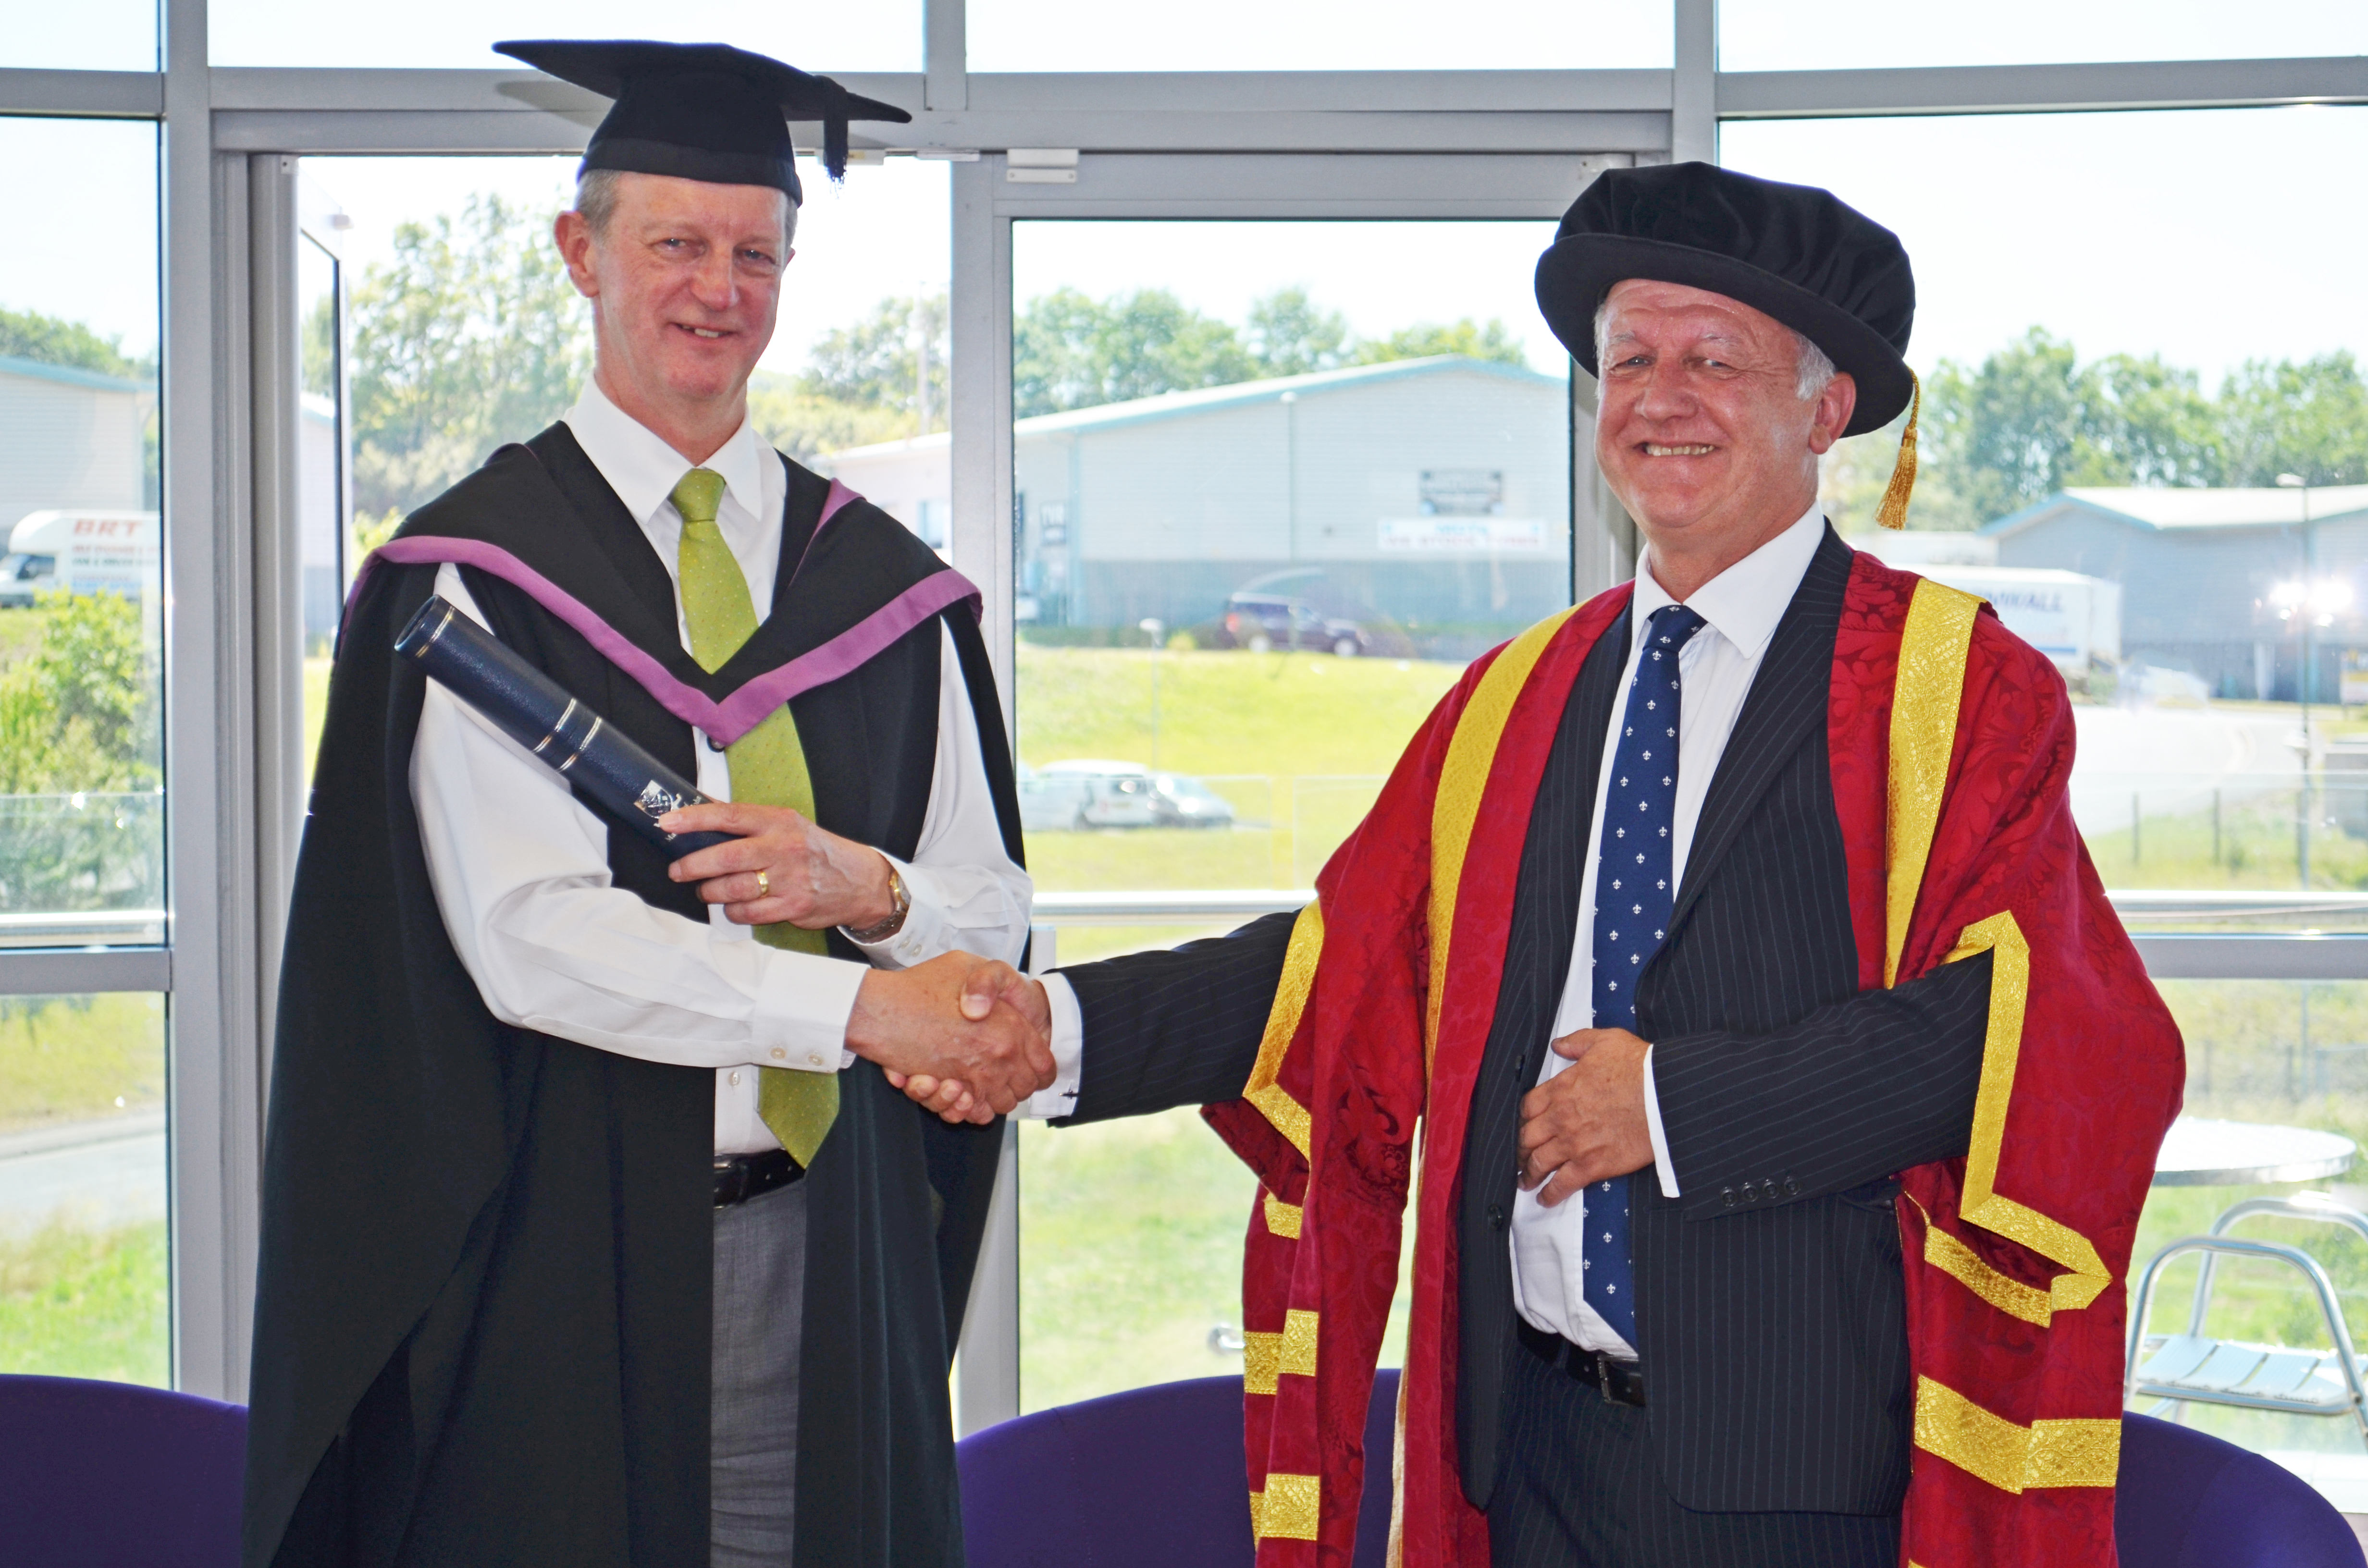 Stephen Criddle OBE Master of Education Honorary Degree